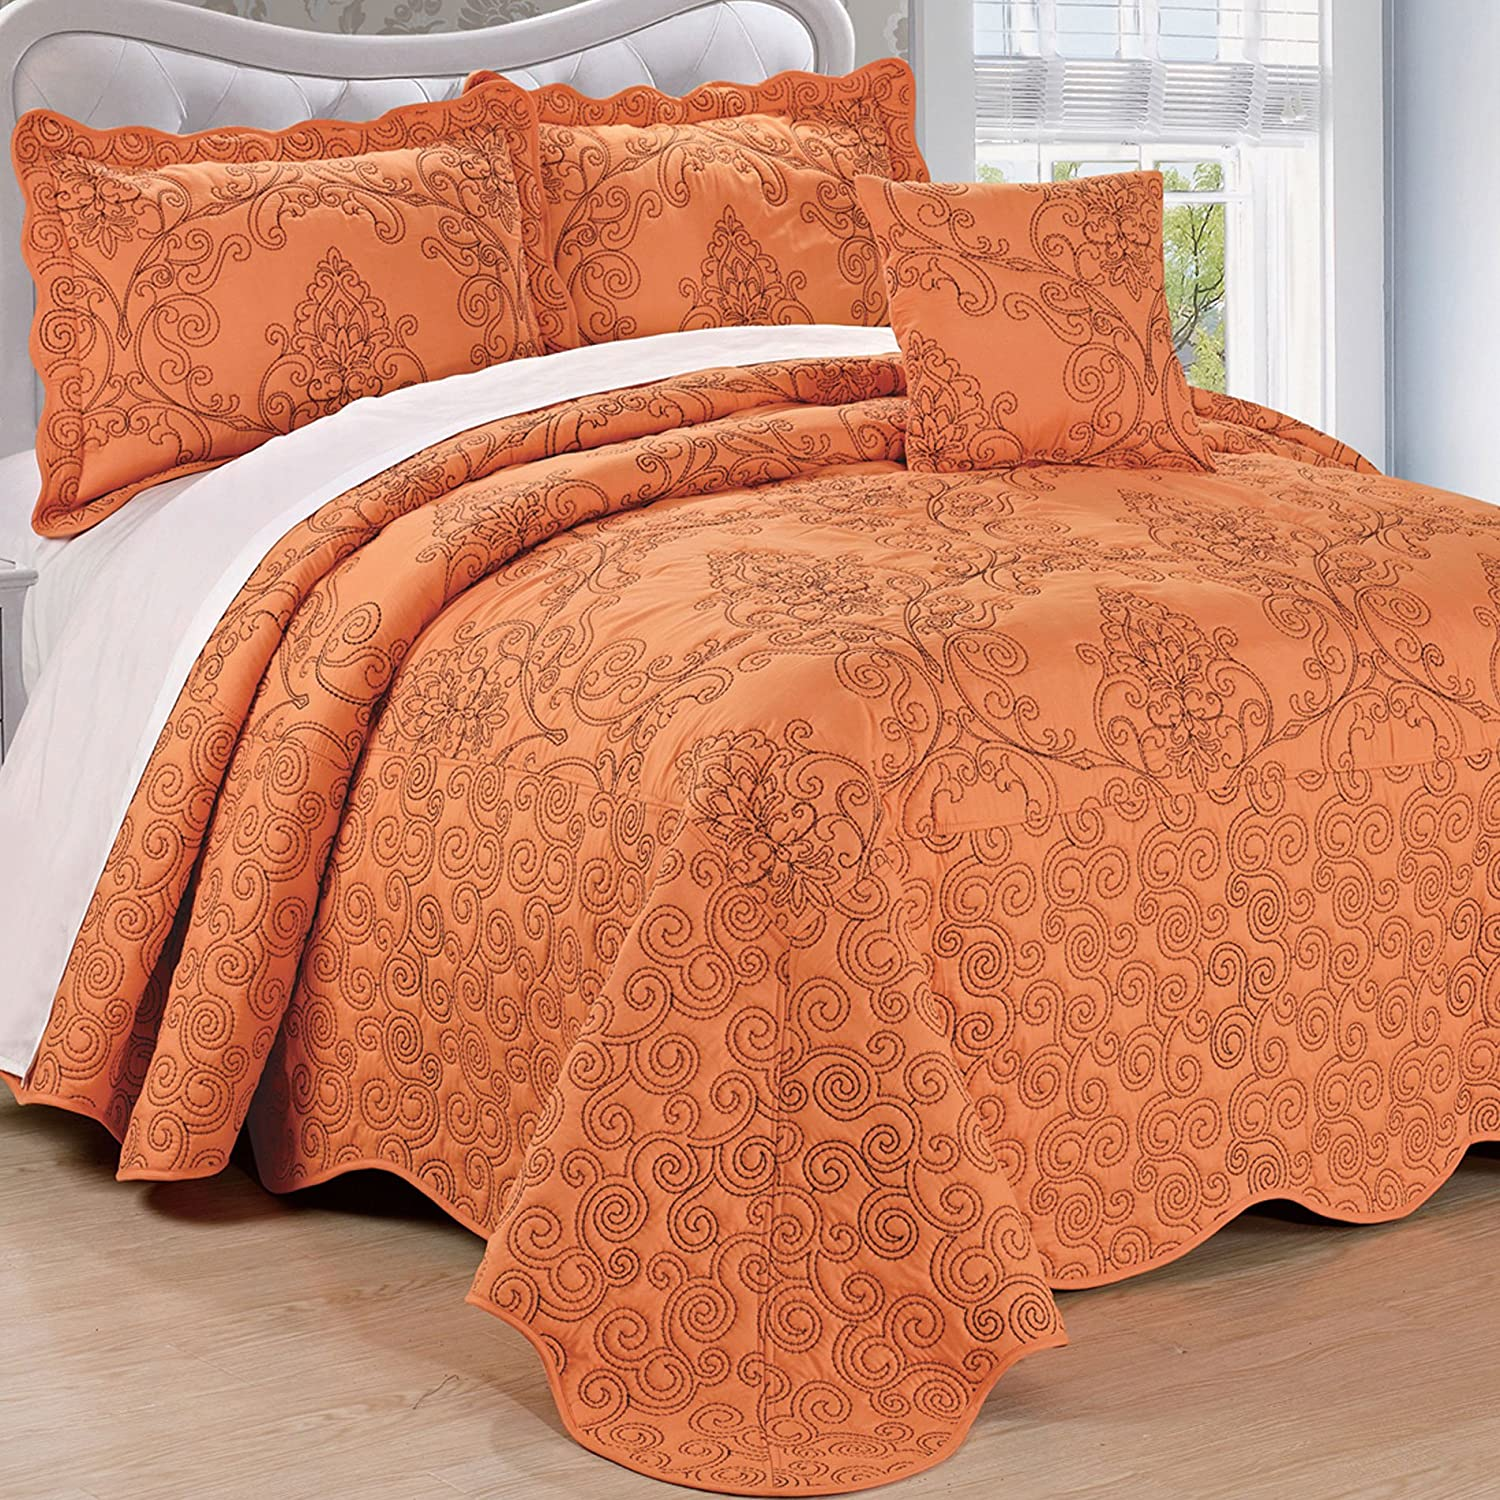 Home Soft Things Serenta Damask 4 Piece Bedspread Set, Queen, Nectarine